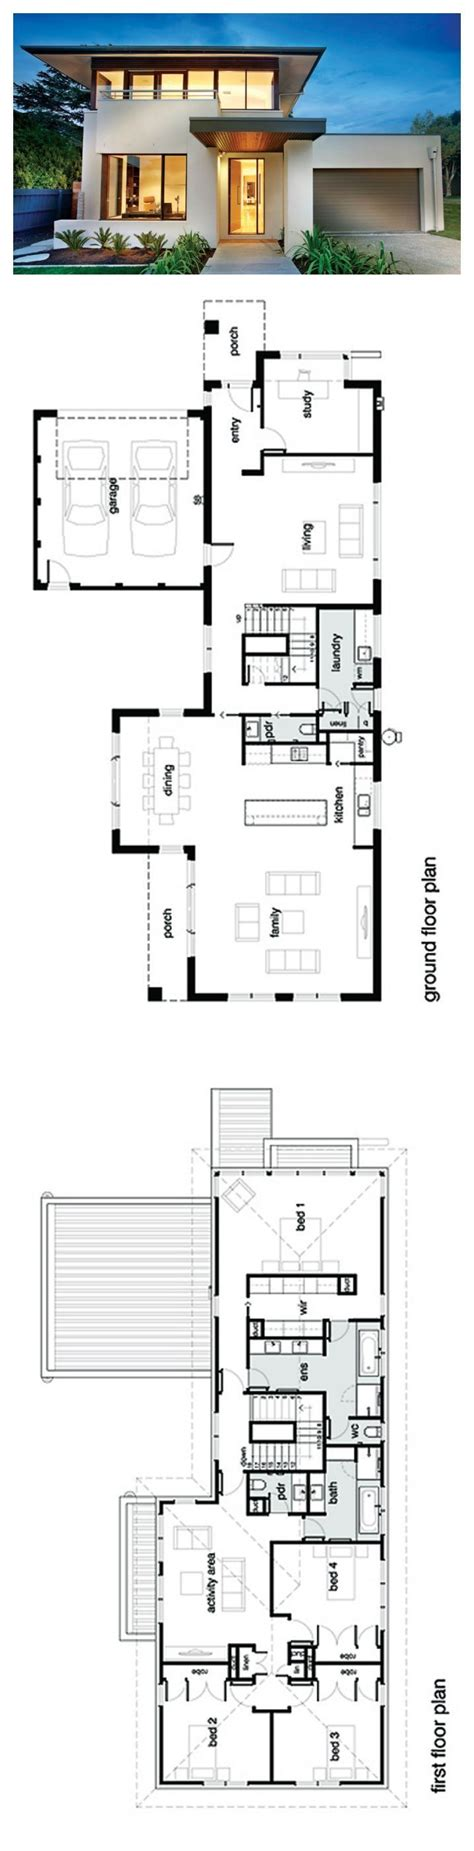 house plans with pictures of real houses real estate investing bathroom modern double story house